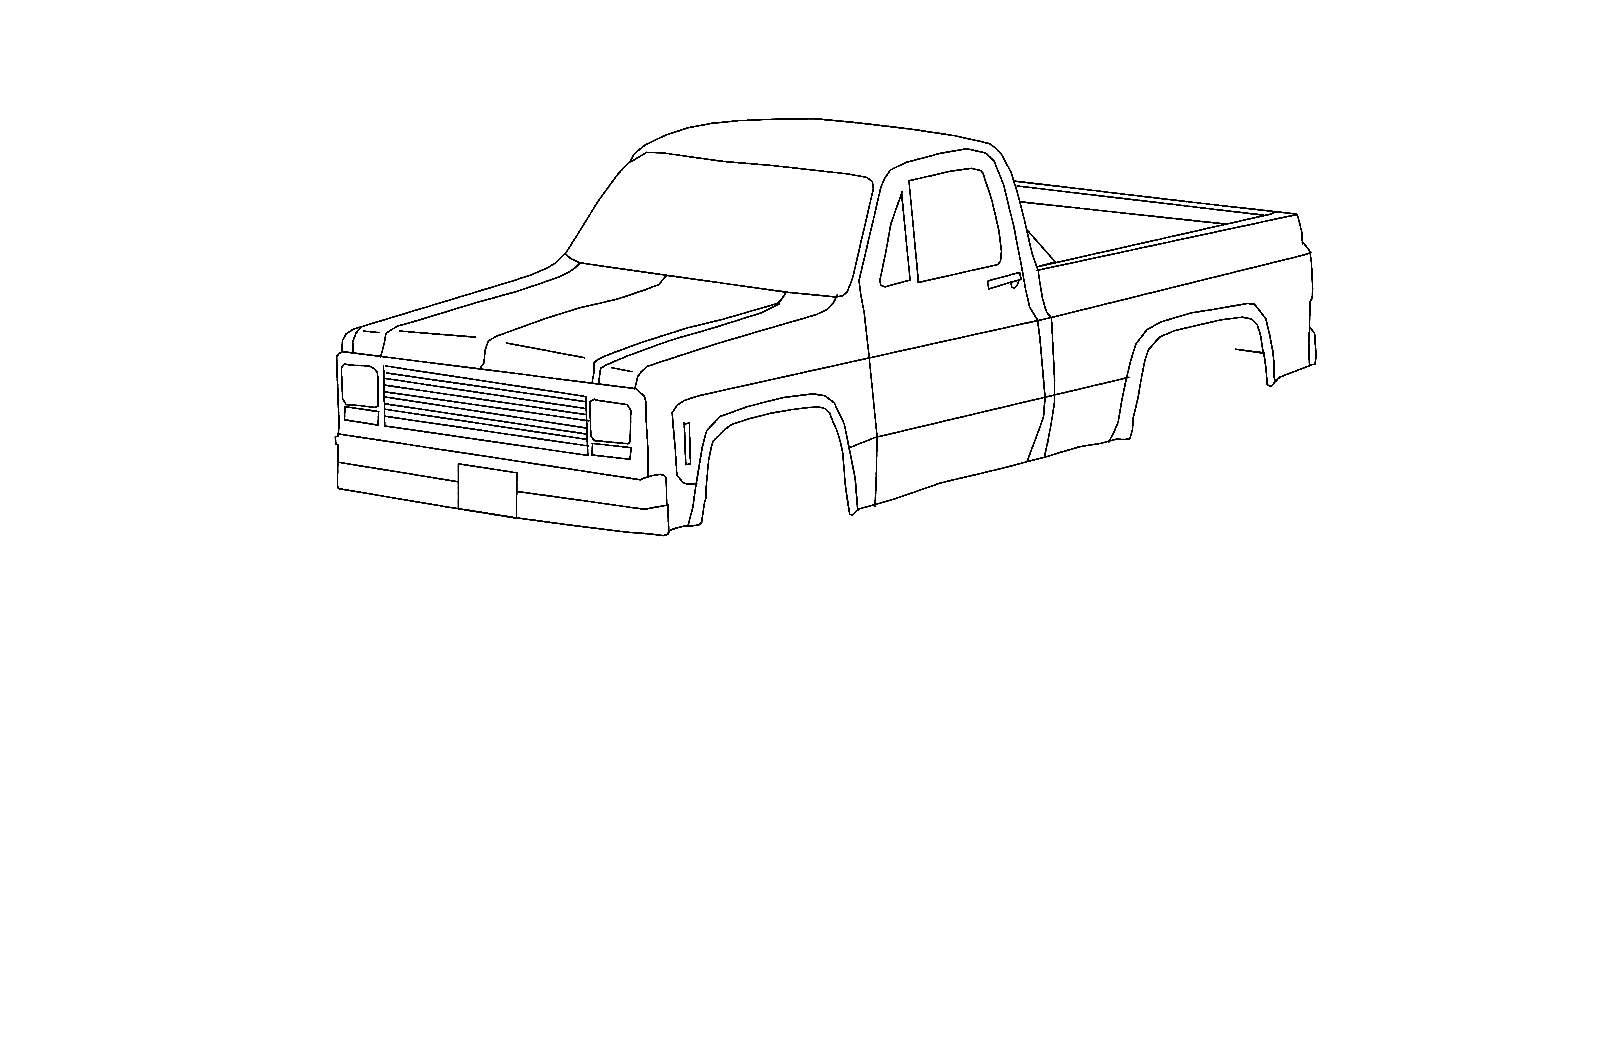 Chevy Bowtie Emblem Dimensions additionally Wiring Diagram For 57 Chevy further Toyota Truck Coloring Pages also Ford Ranger Specifications as well CE9AA. on chevy colorado pickup truck dimensions